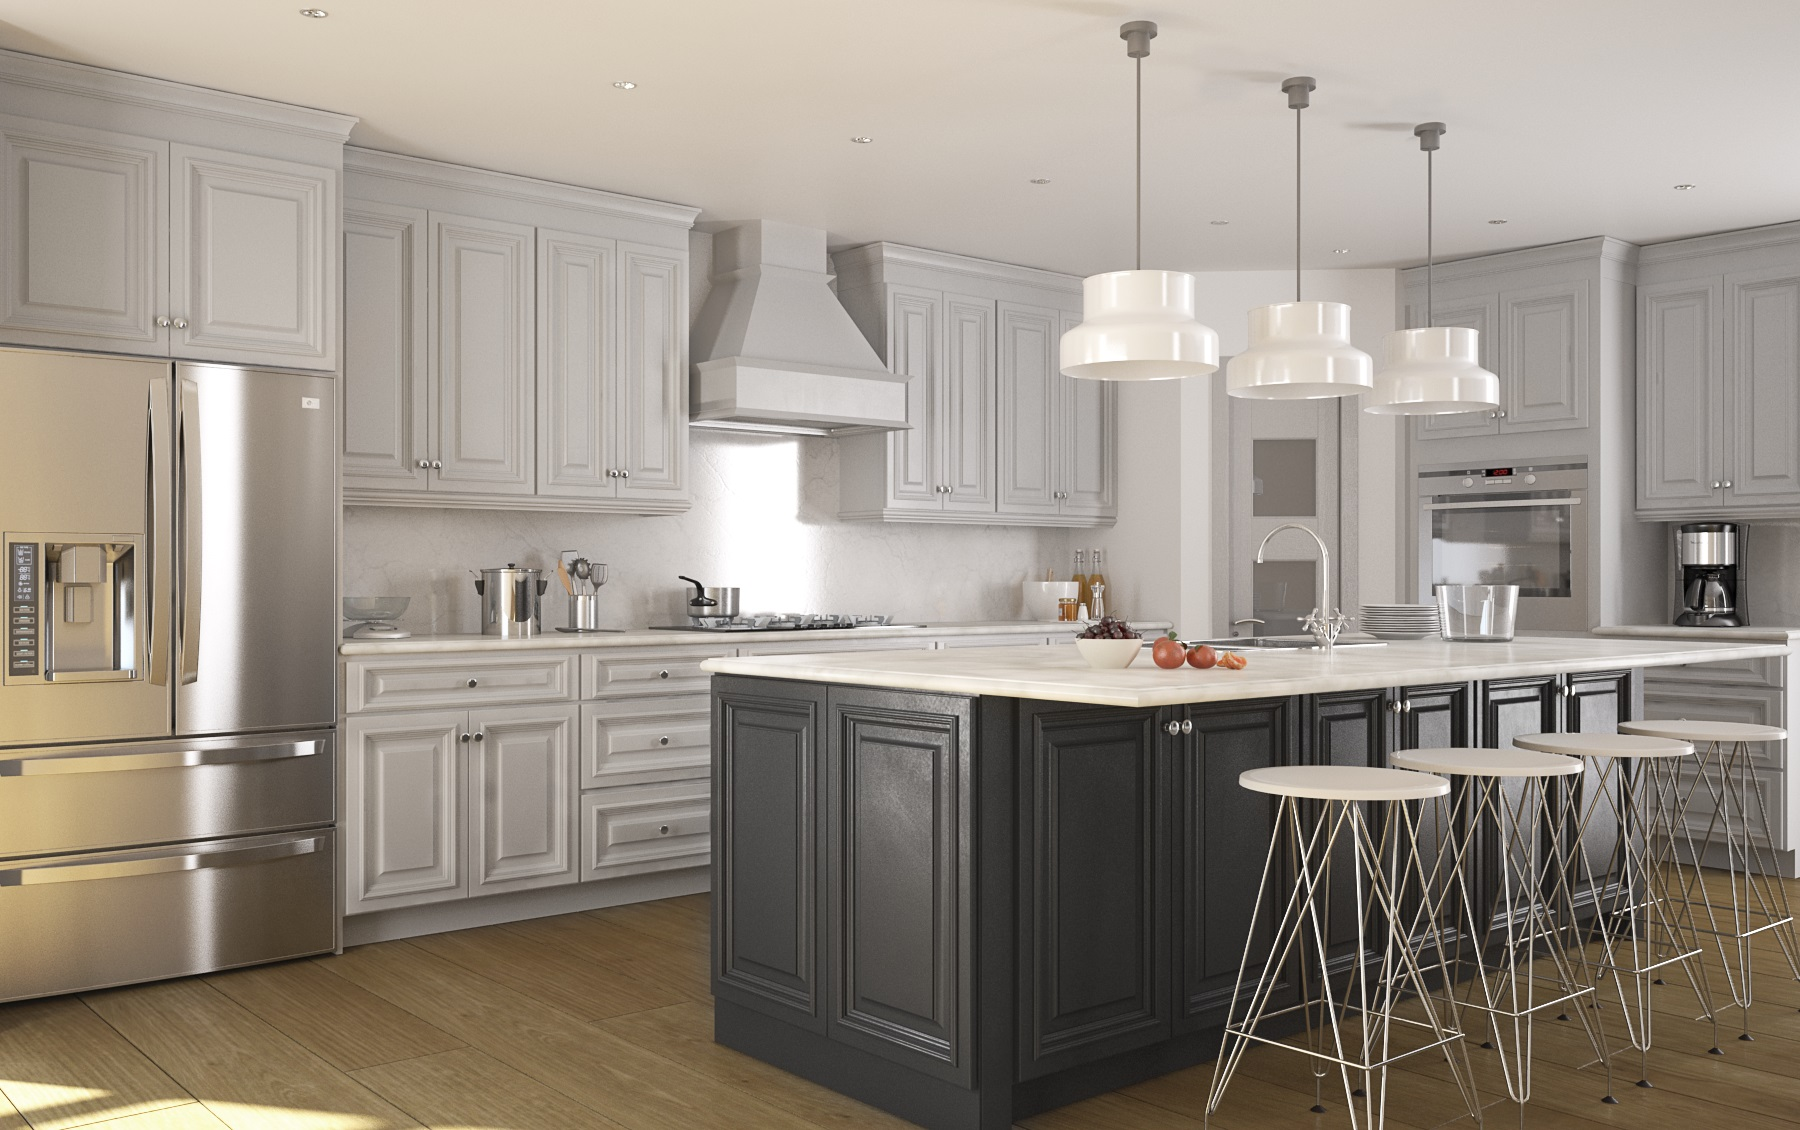 Photos Of Gray Kitchen Cabinets Roosevelt Dove Gray Kitchen Cabinets Kitchen Cabinets